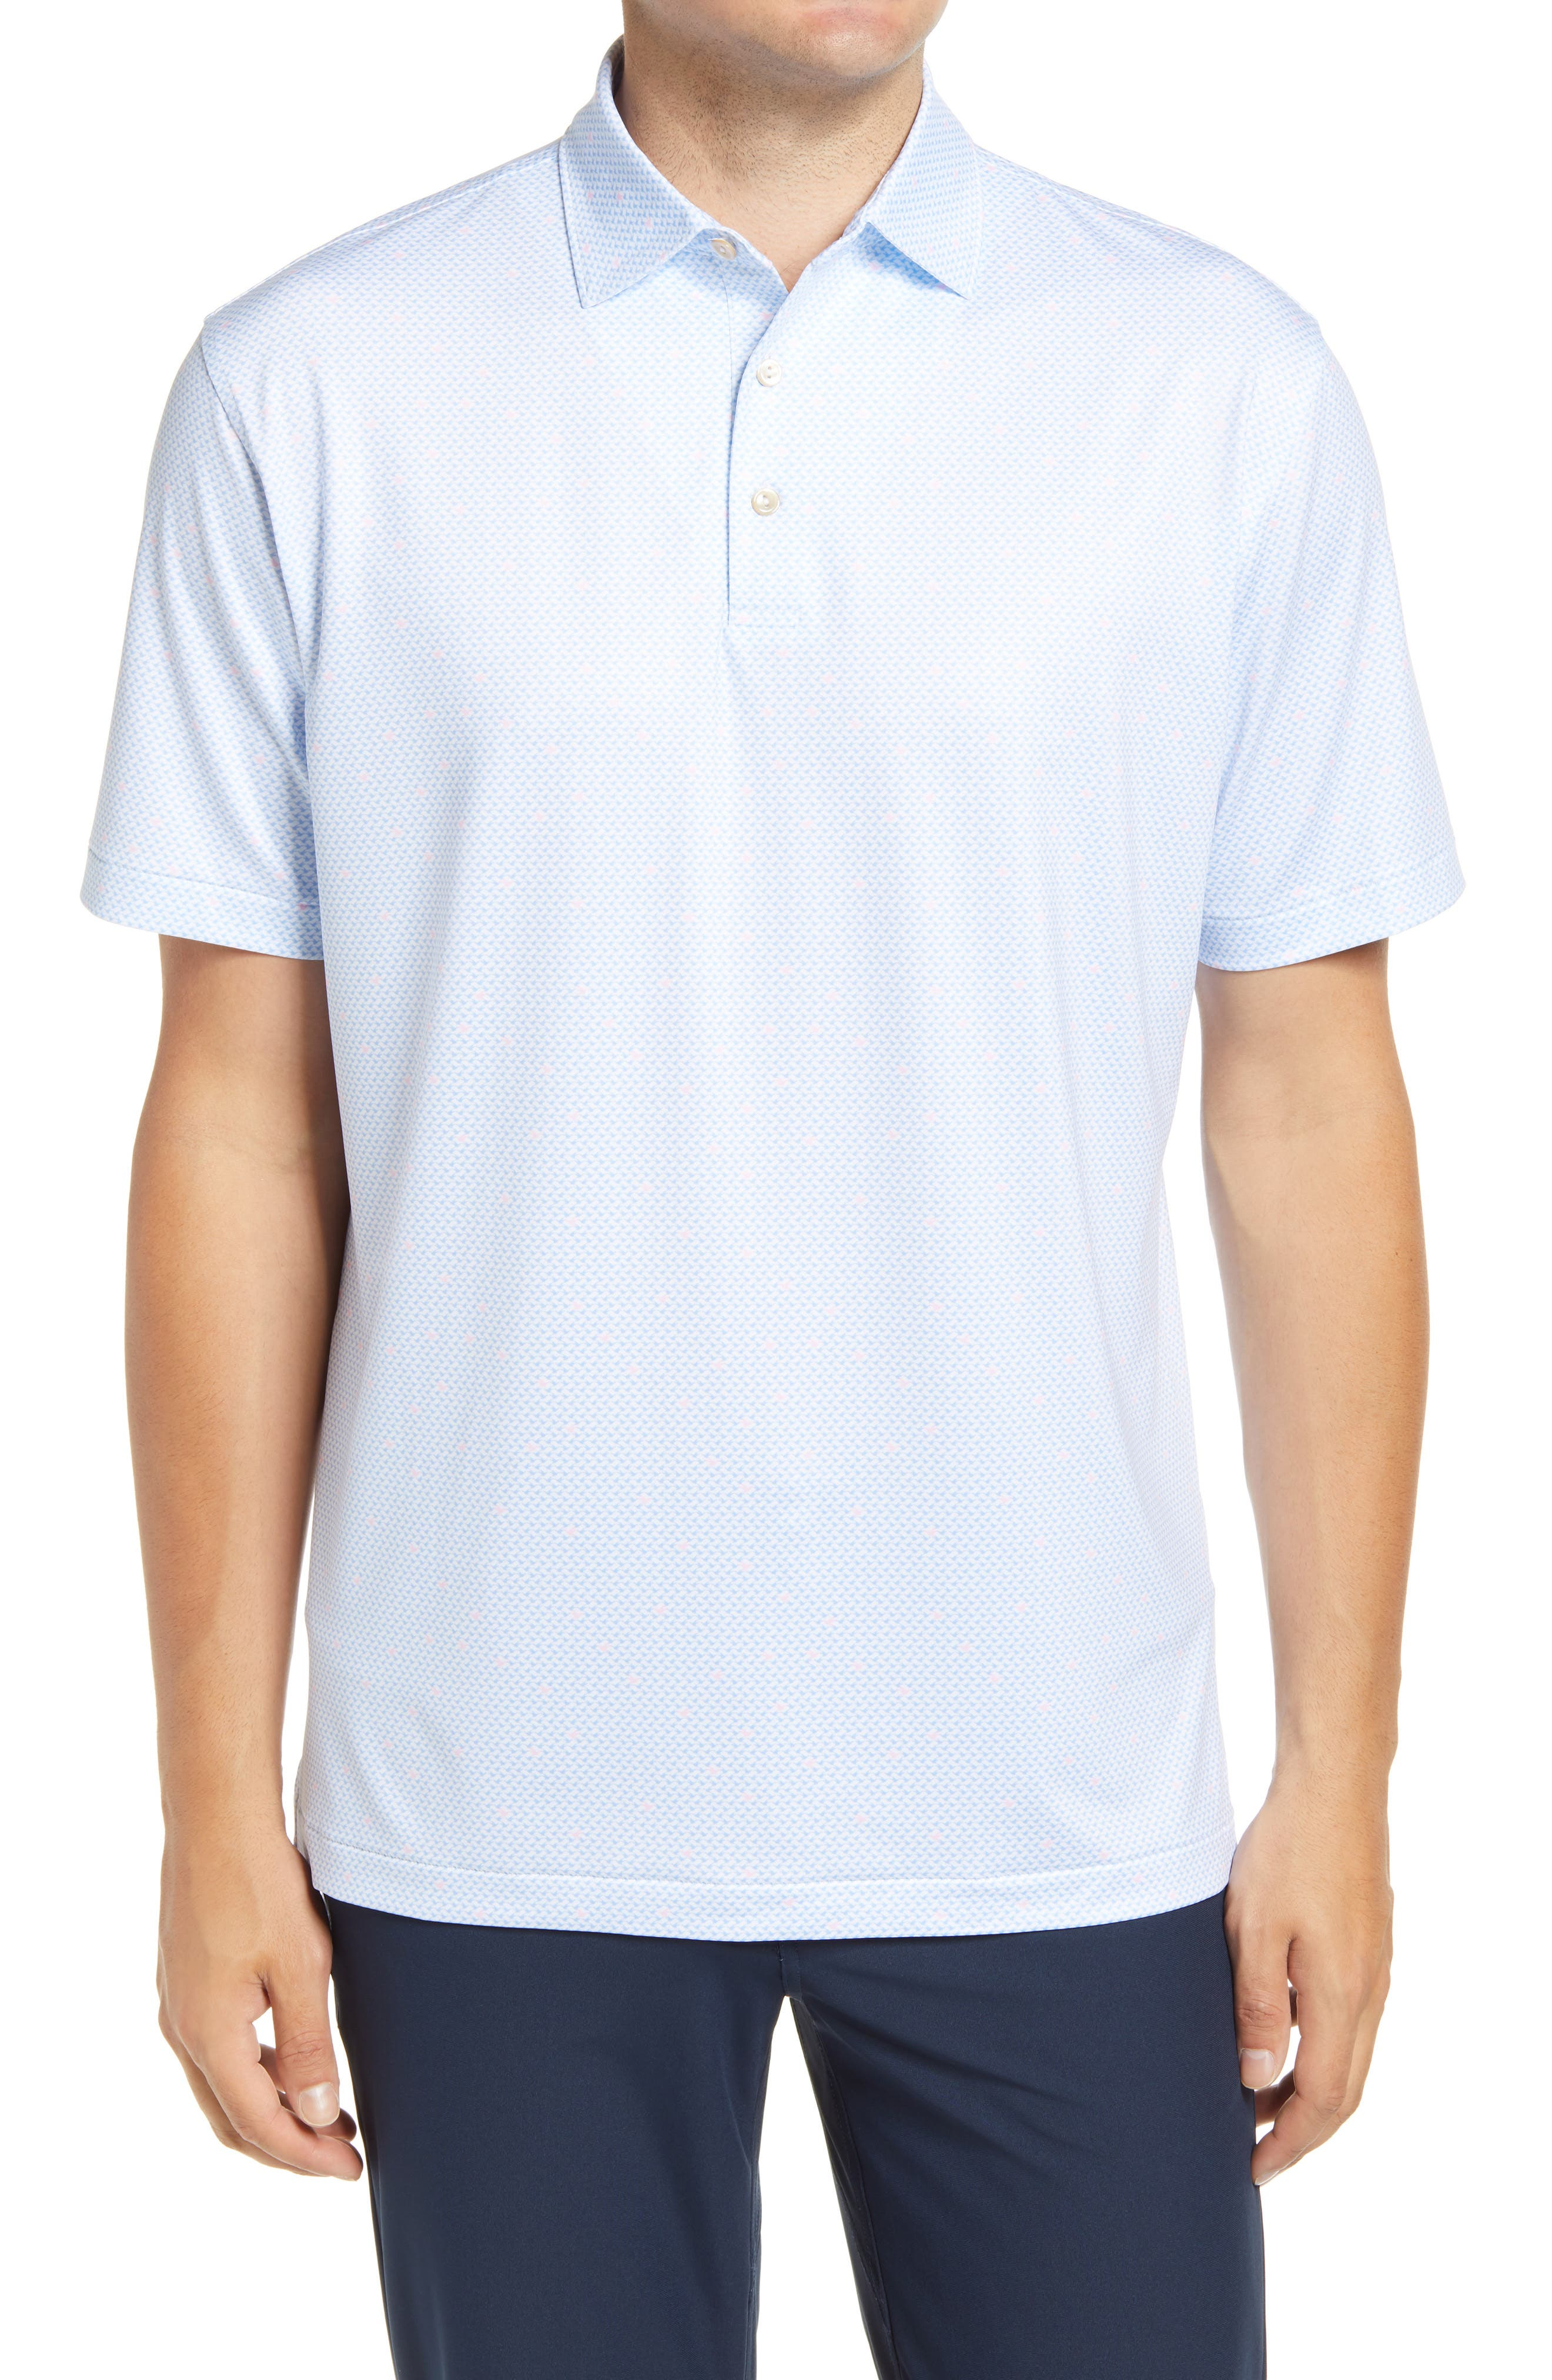 Stretchy, moisture-wicking fabric keeps up with you from links to lunch in an all-activity golf polo sporting enhanced UV protection and a pastel microprint. Style Name: Peter Millar Stocket Performance Jersey Polo. Style Number: 6092505. Available in stores.